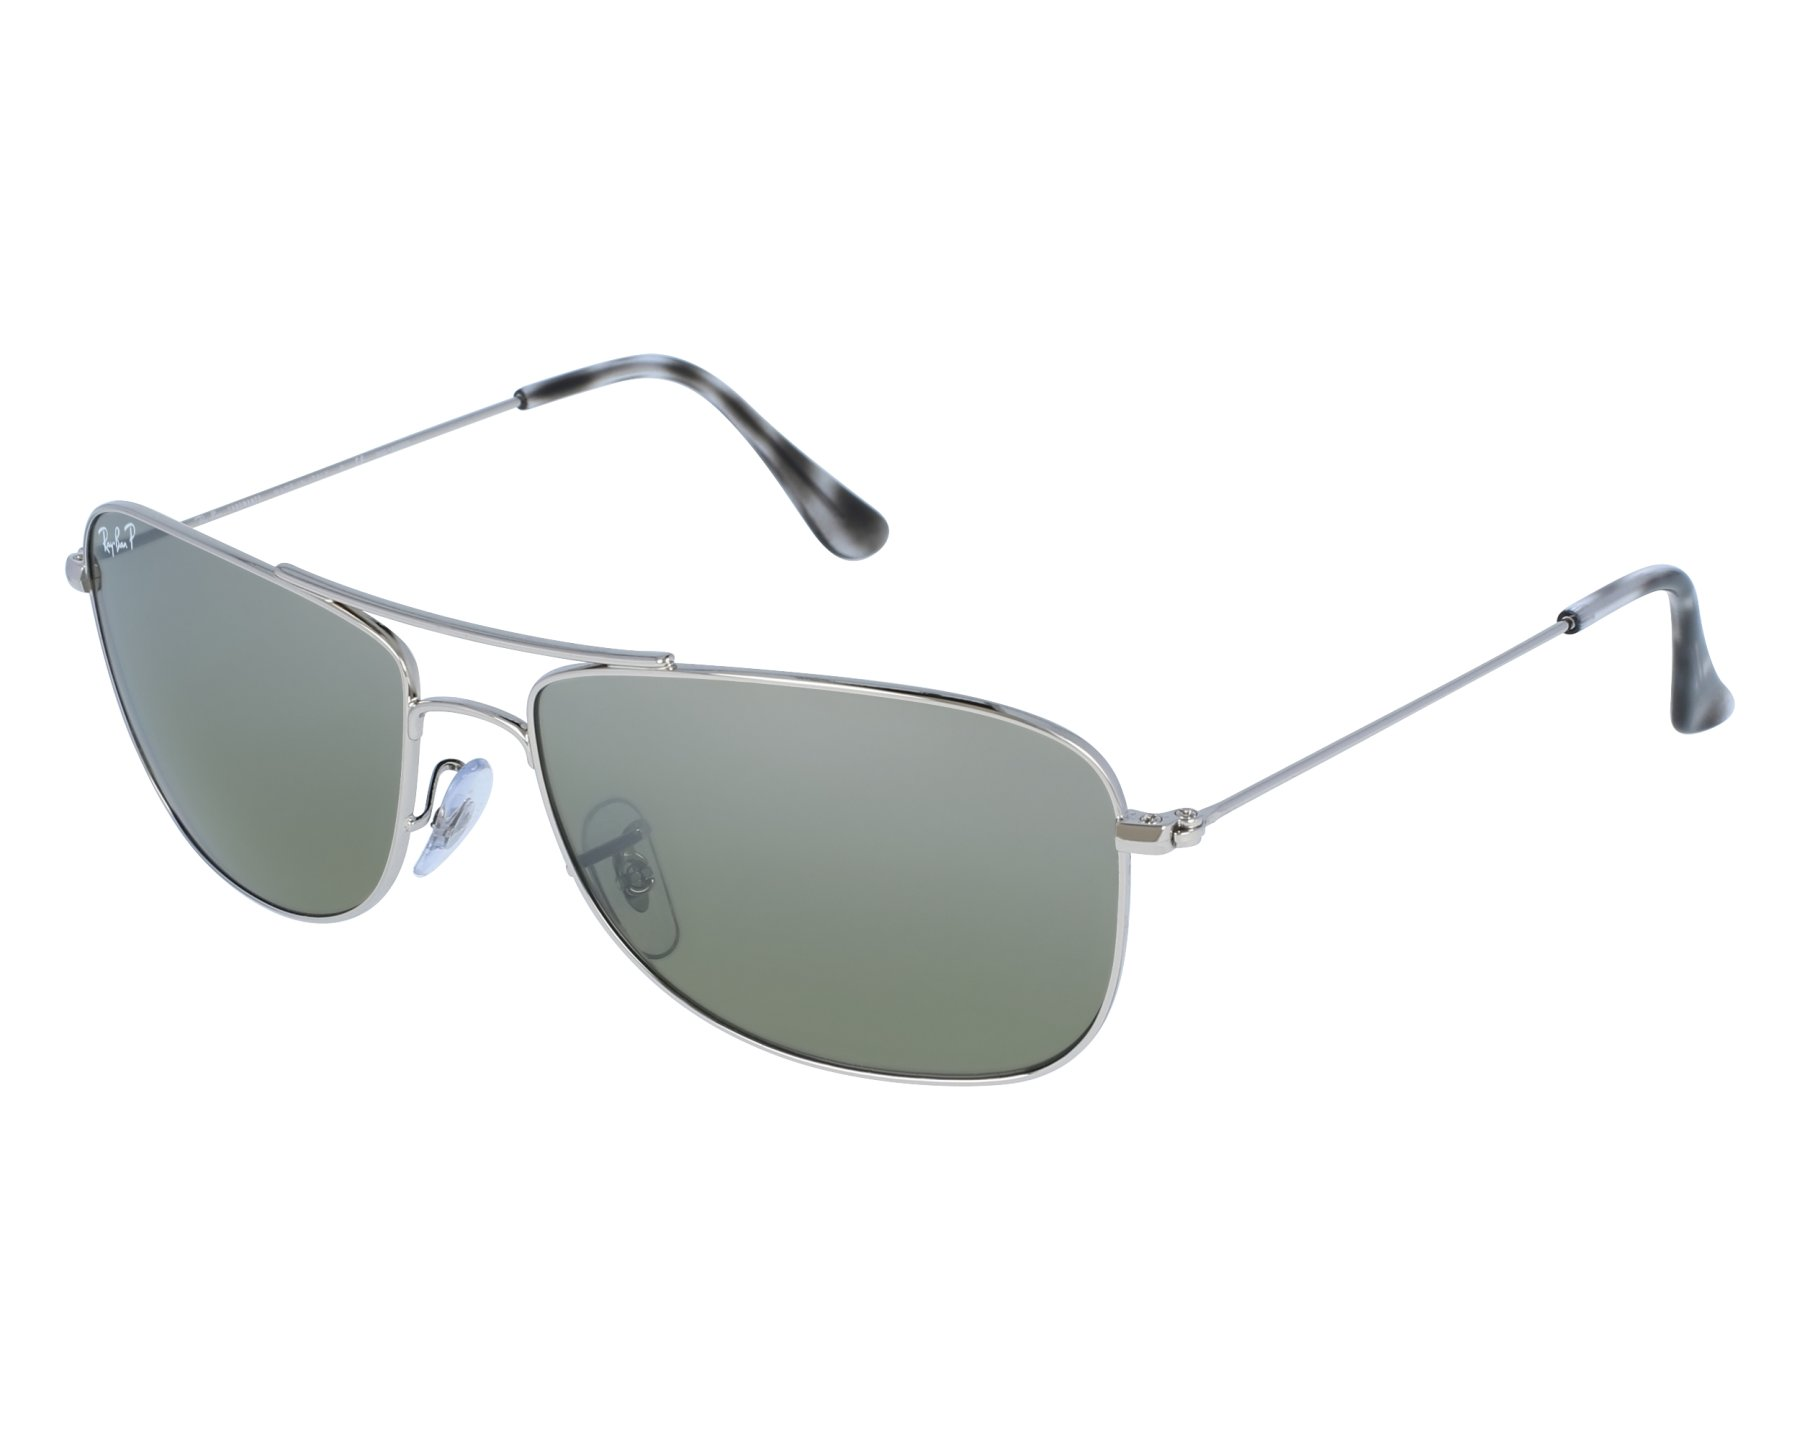 6af72a5f0ec Sunglasses Ray-Ban rb-3543 003 5J 59-16 Silver front view